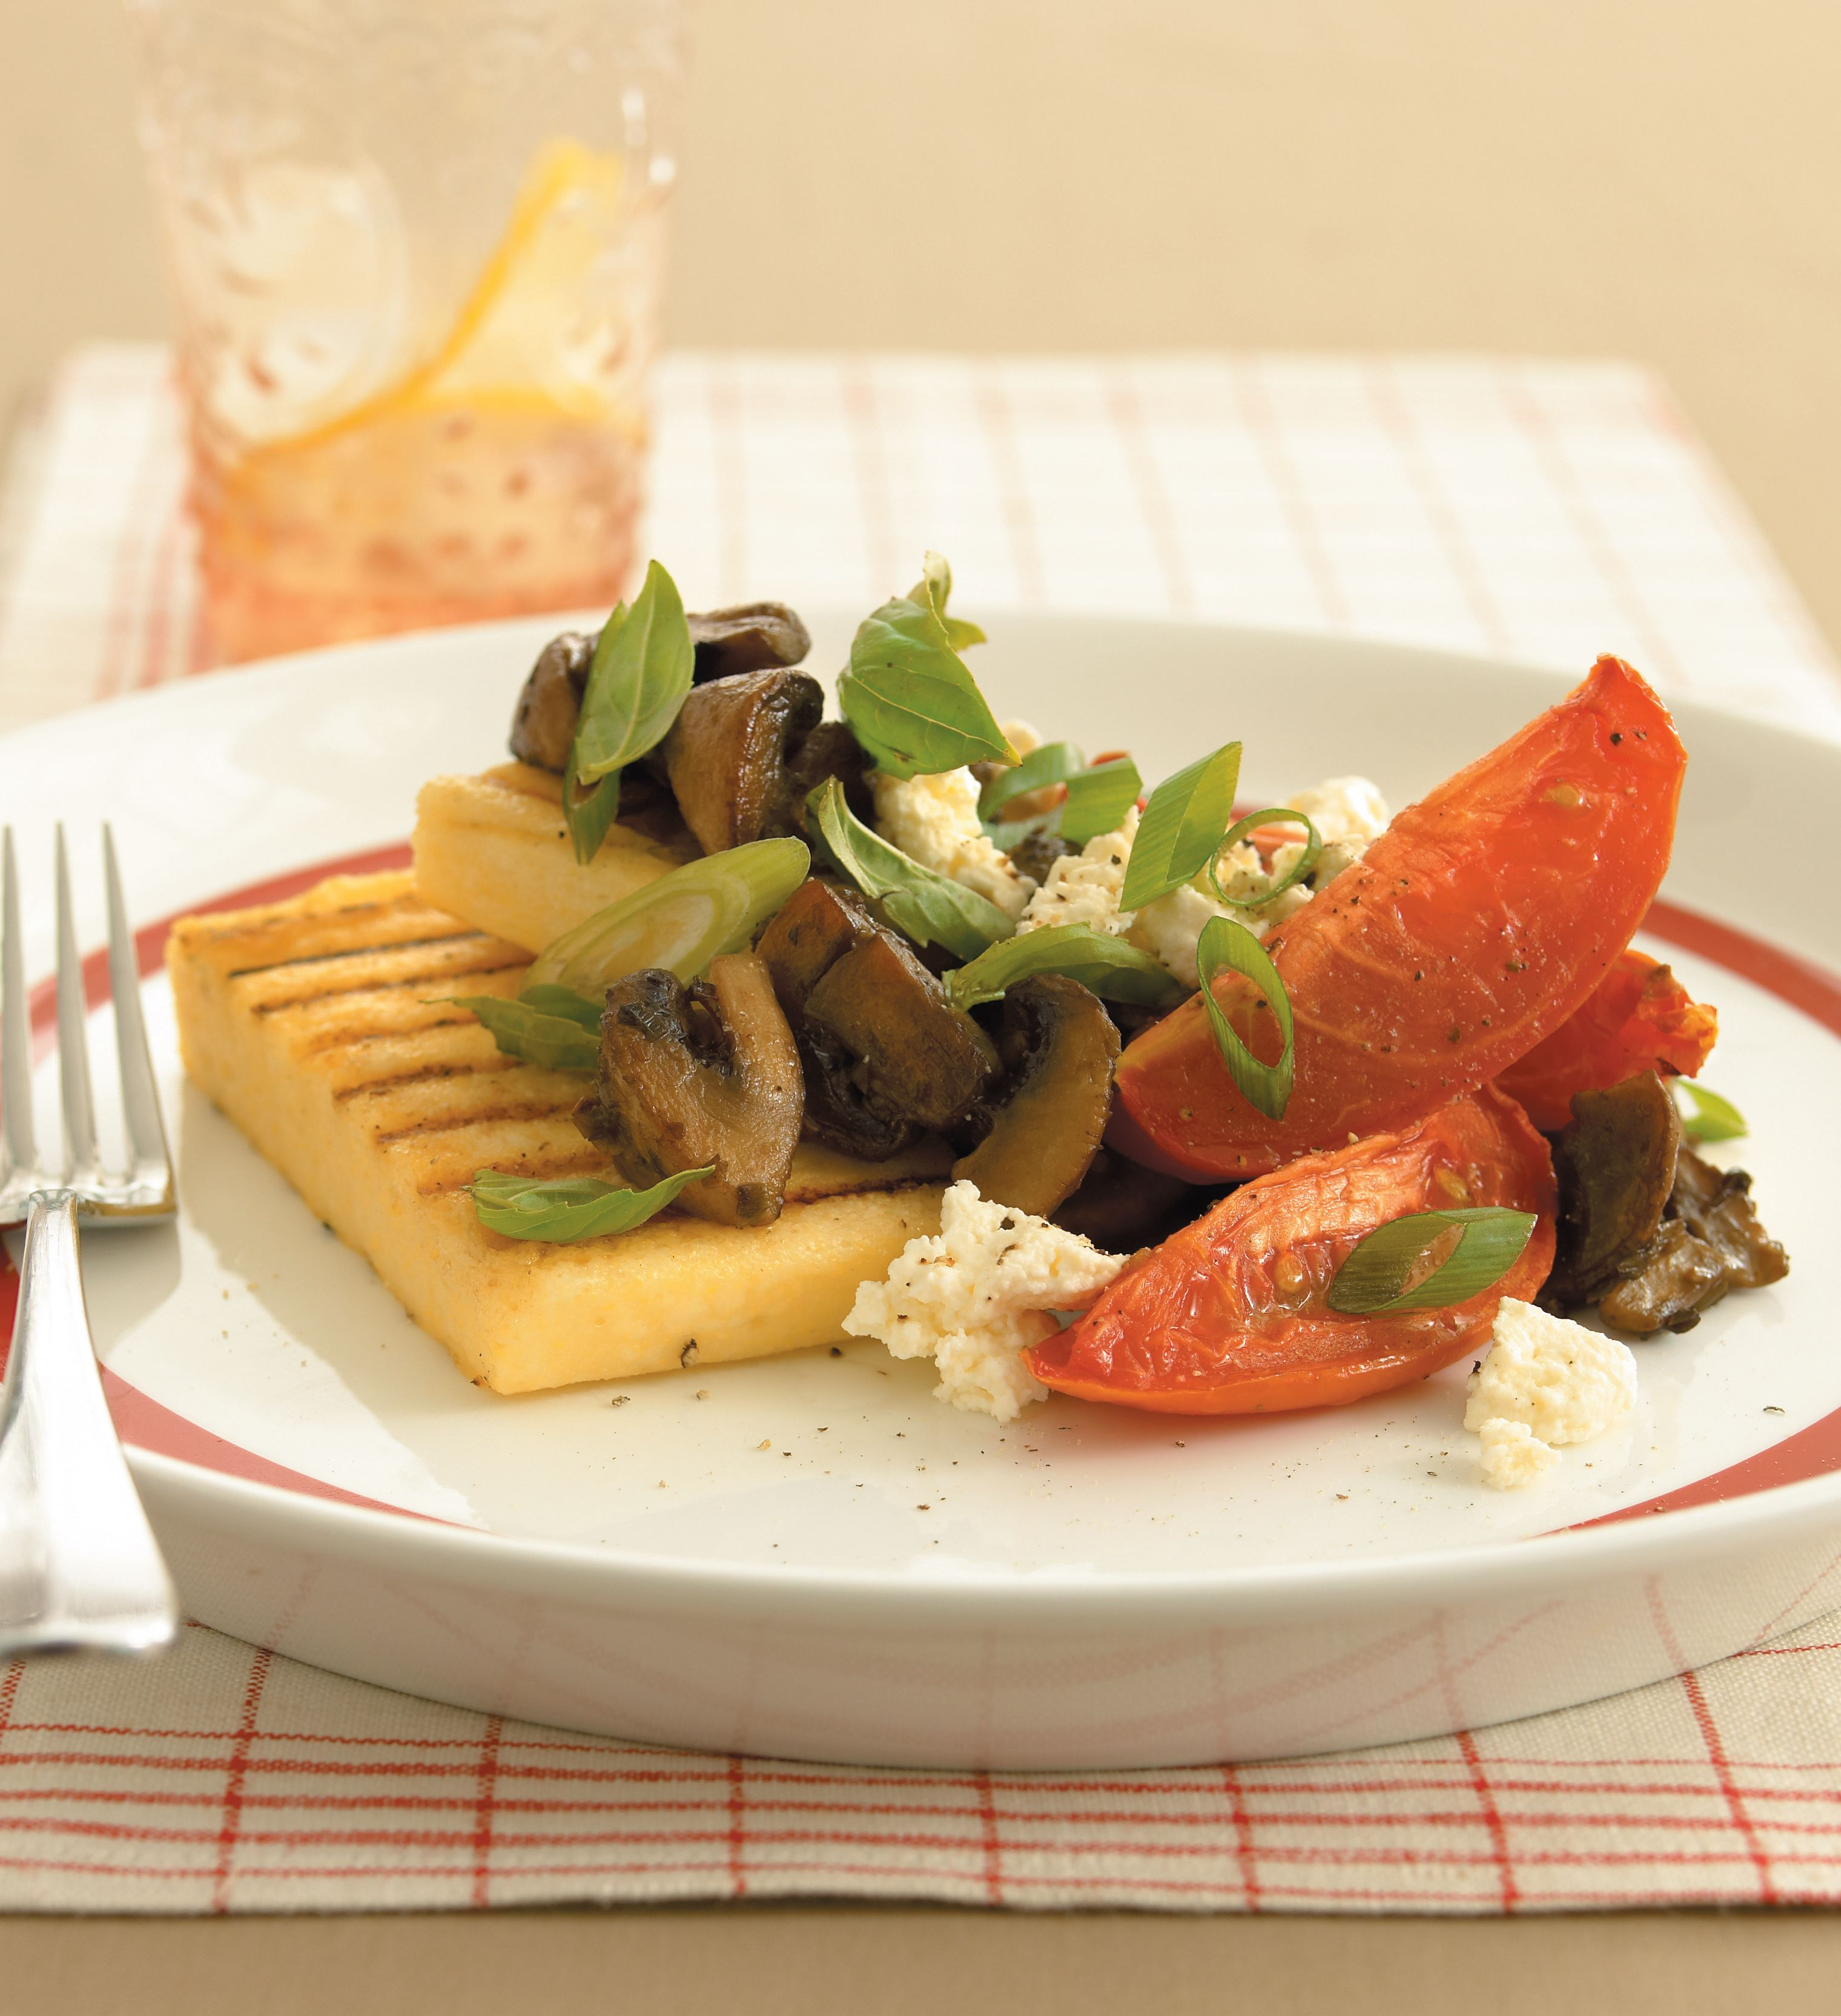 Polenta wedges with mushroom sauce